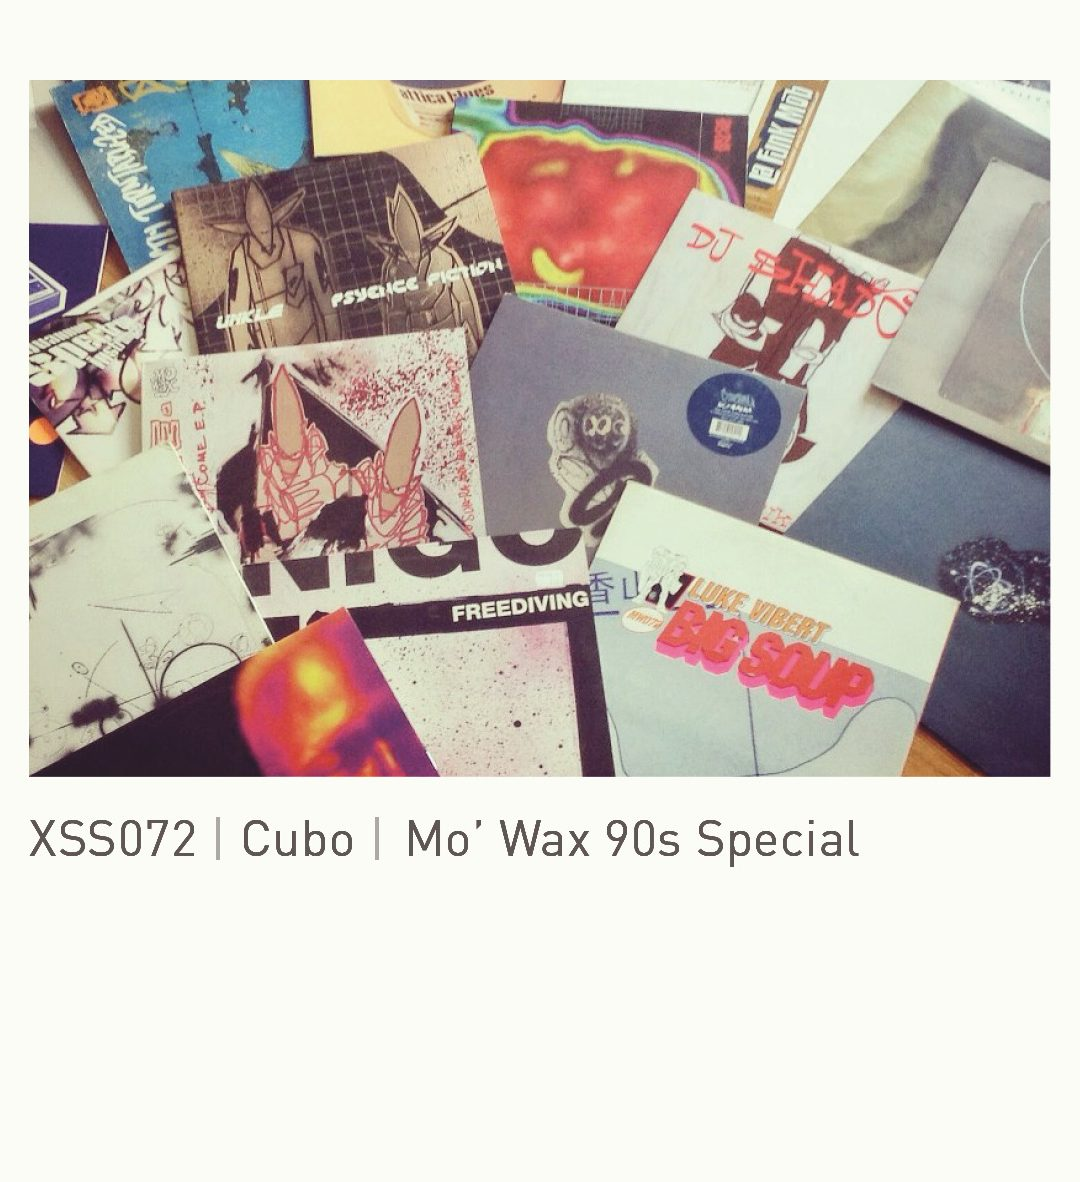 XSS072 | Cubo | Mo' Wax 90s Special